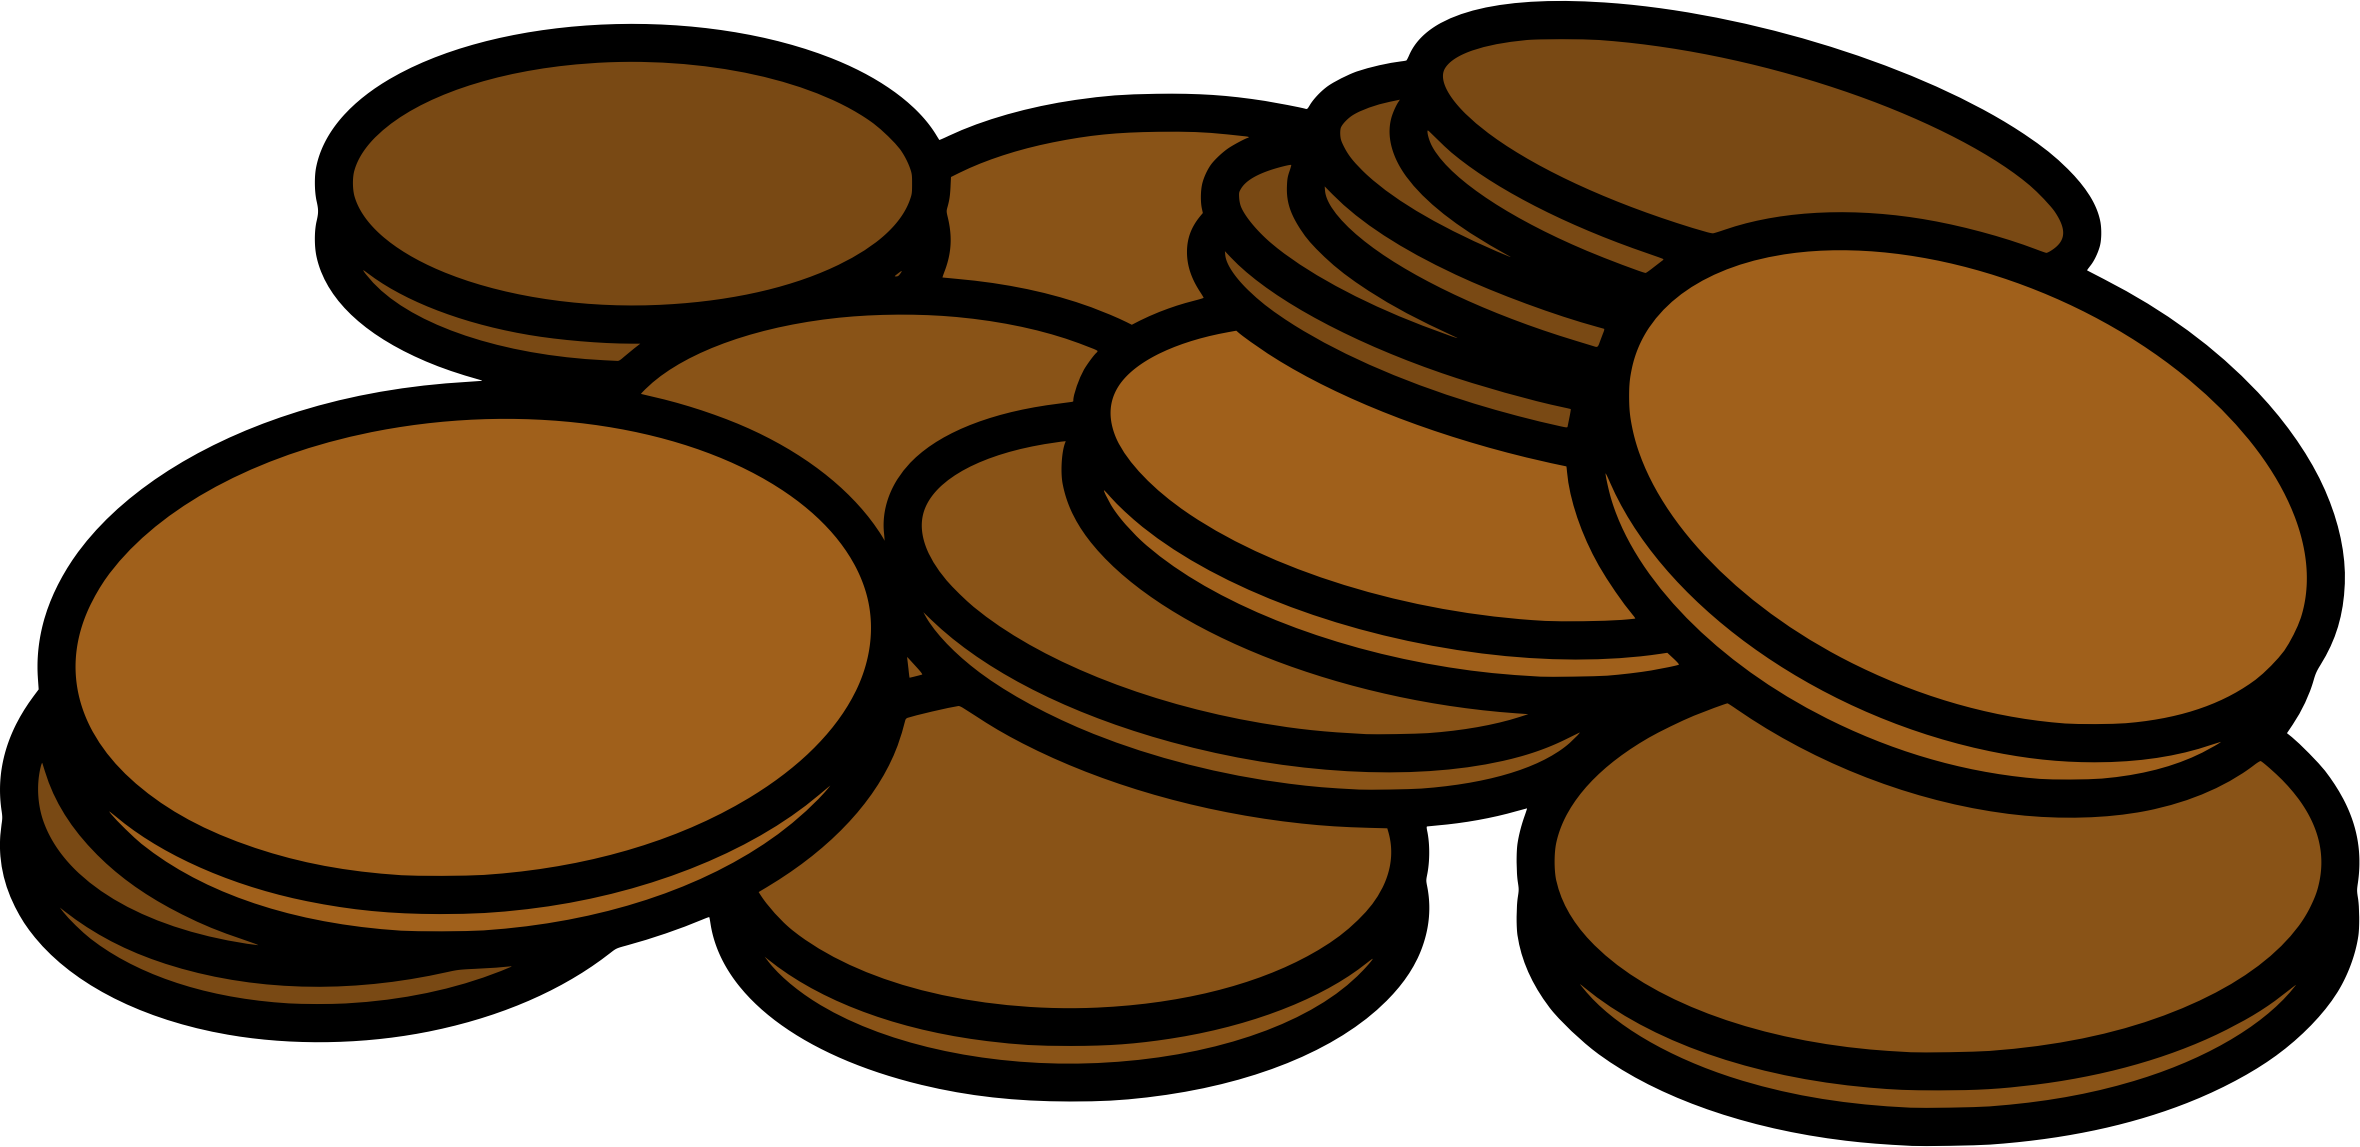 image free Free download best on. Pennies clipart stack penny